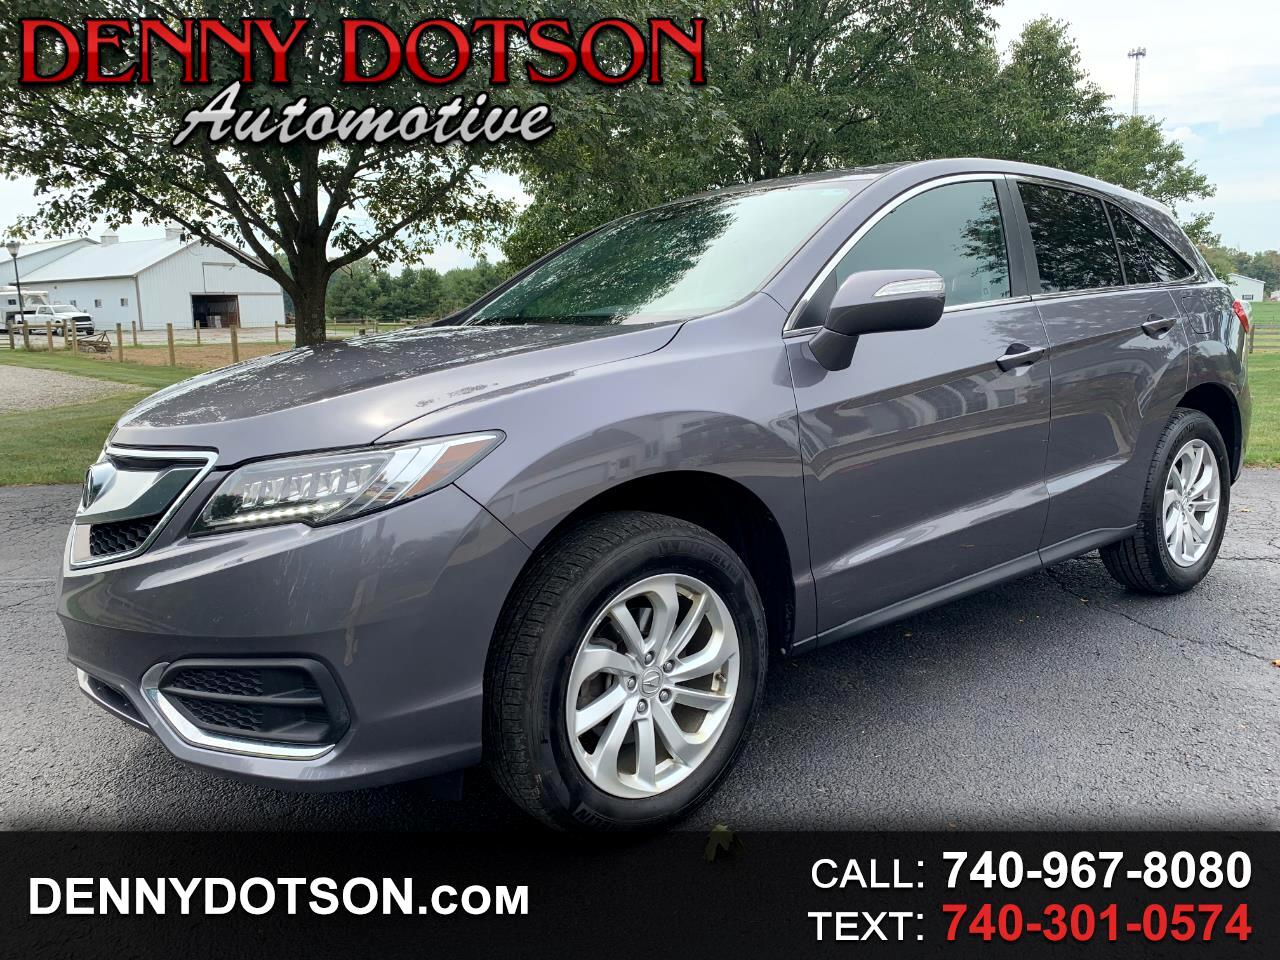 2017 Acura RDX AWD 4dr Tech/AcuraWatch Plus Pkg